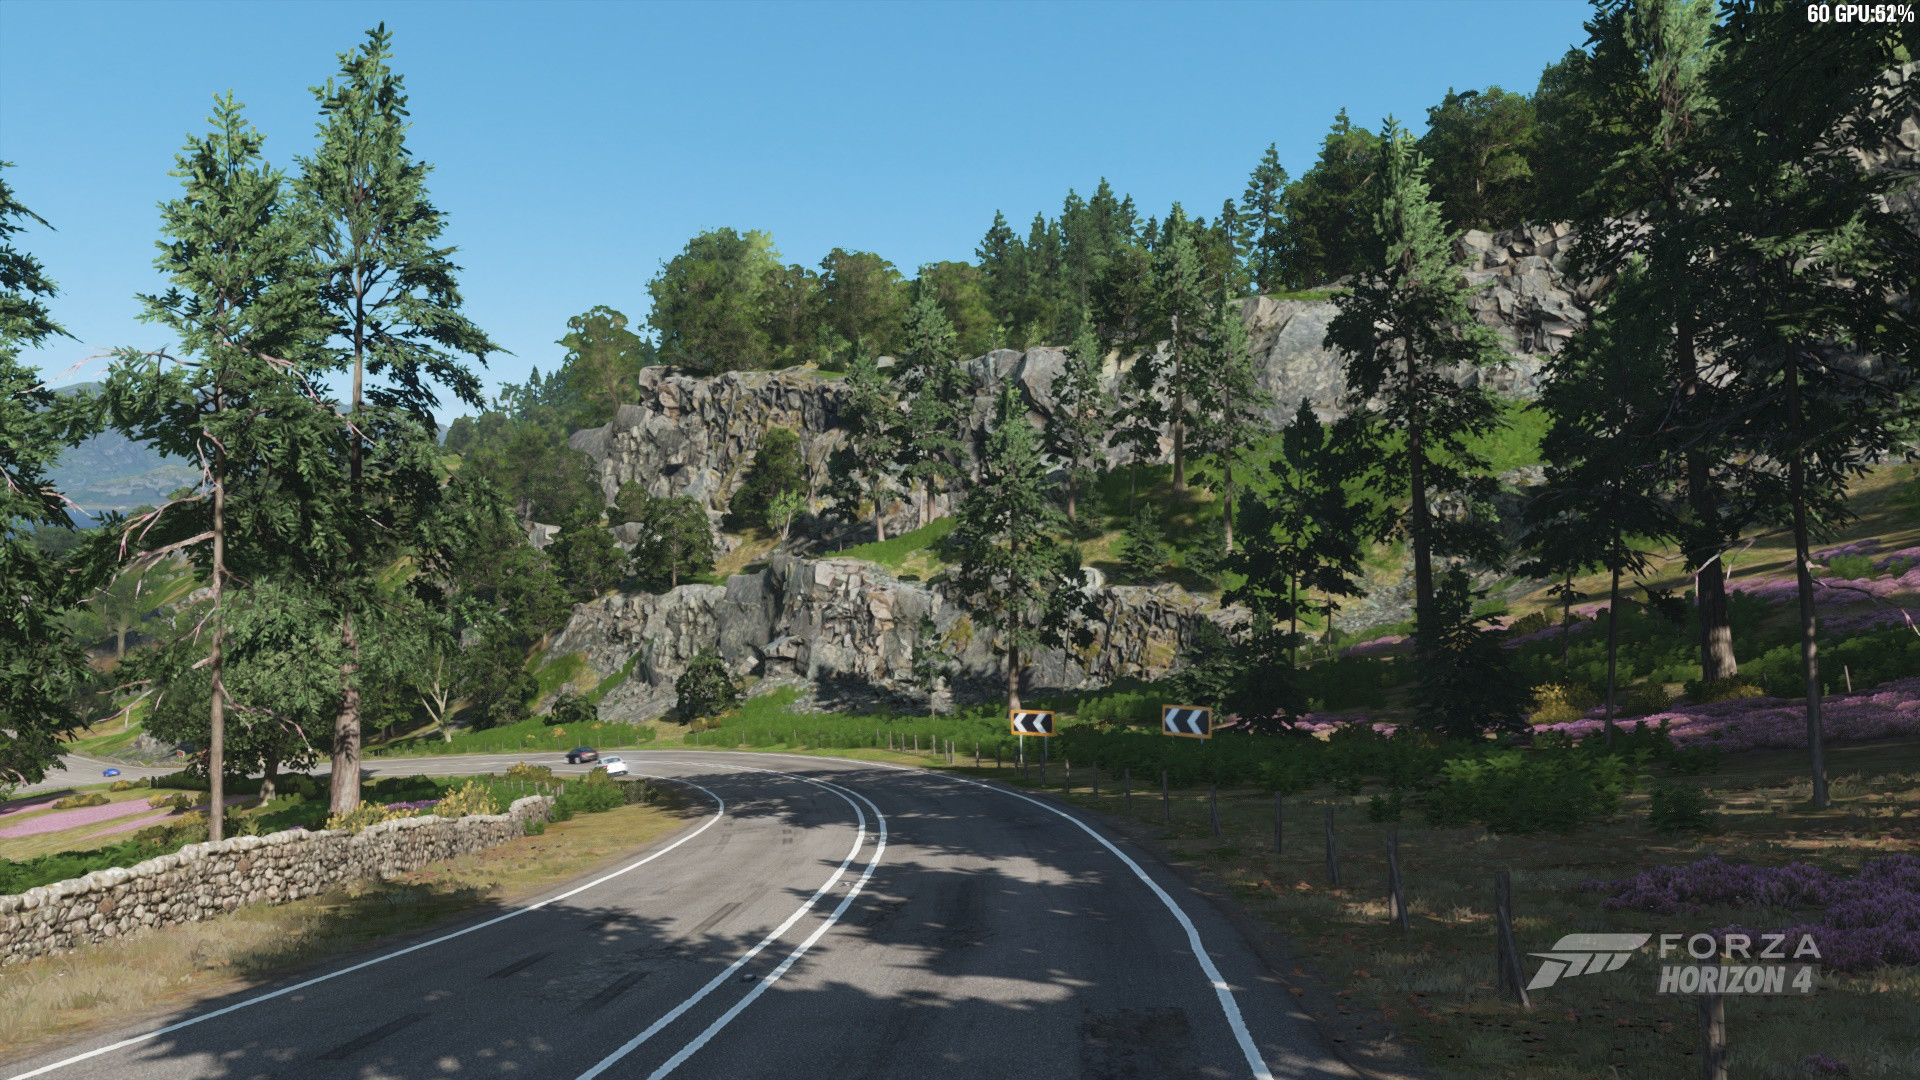 Stefan oprisan forza horizon 4 screenshot 2018 09 16 10 22 17 20